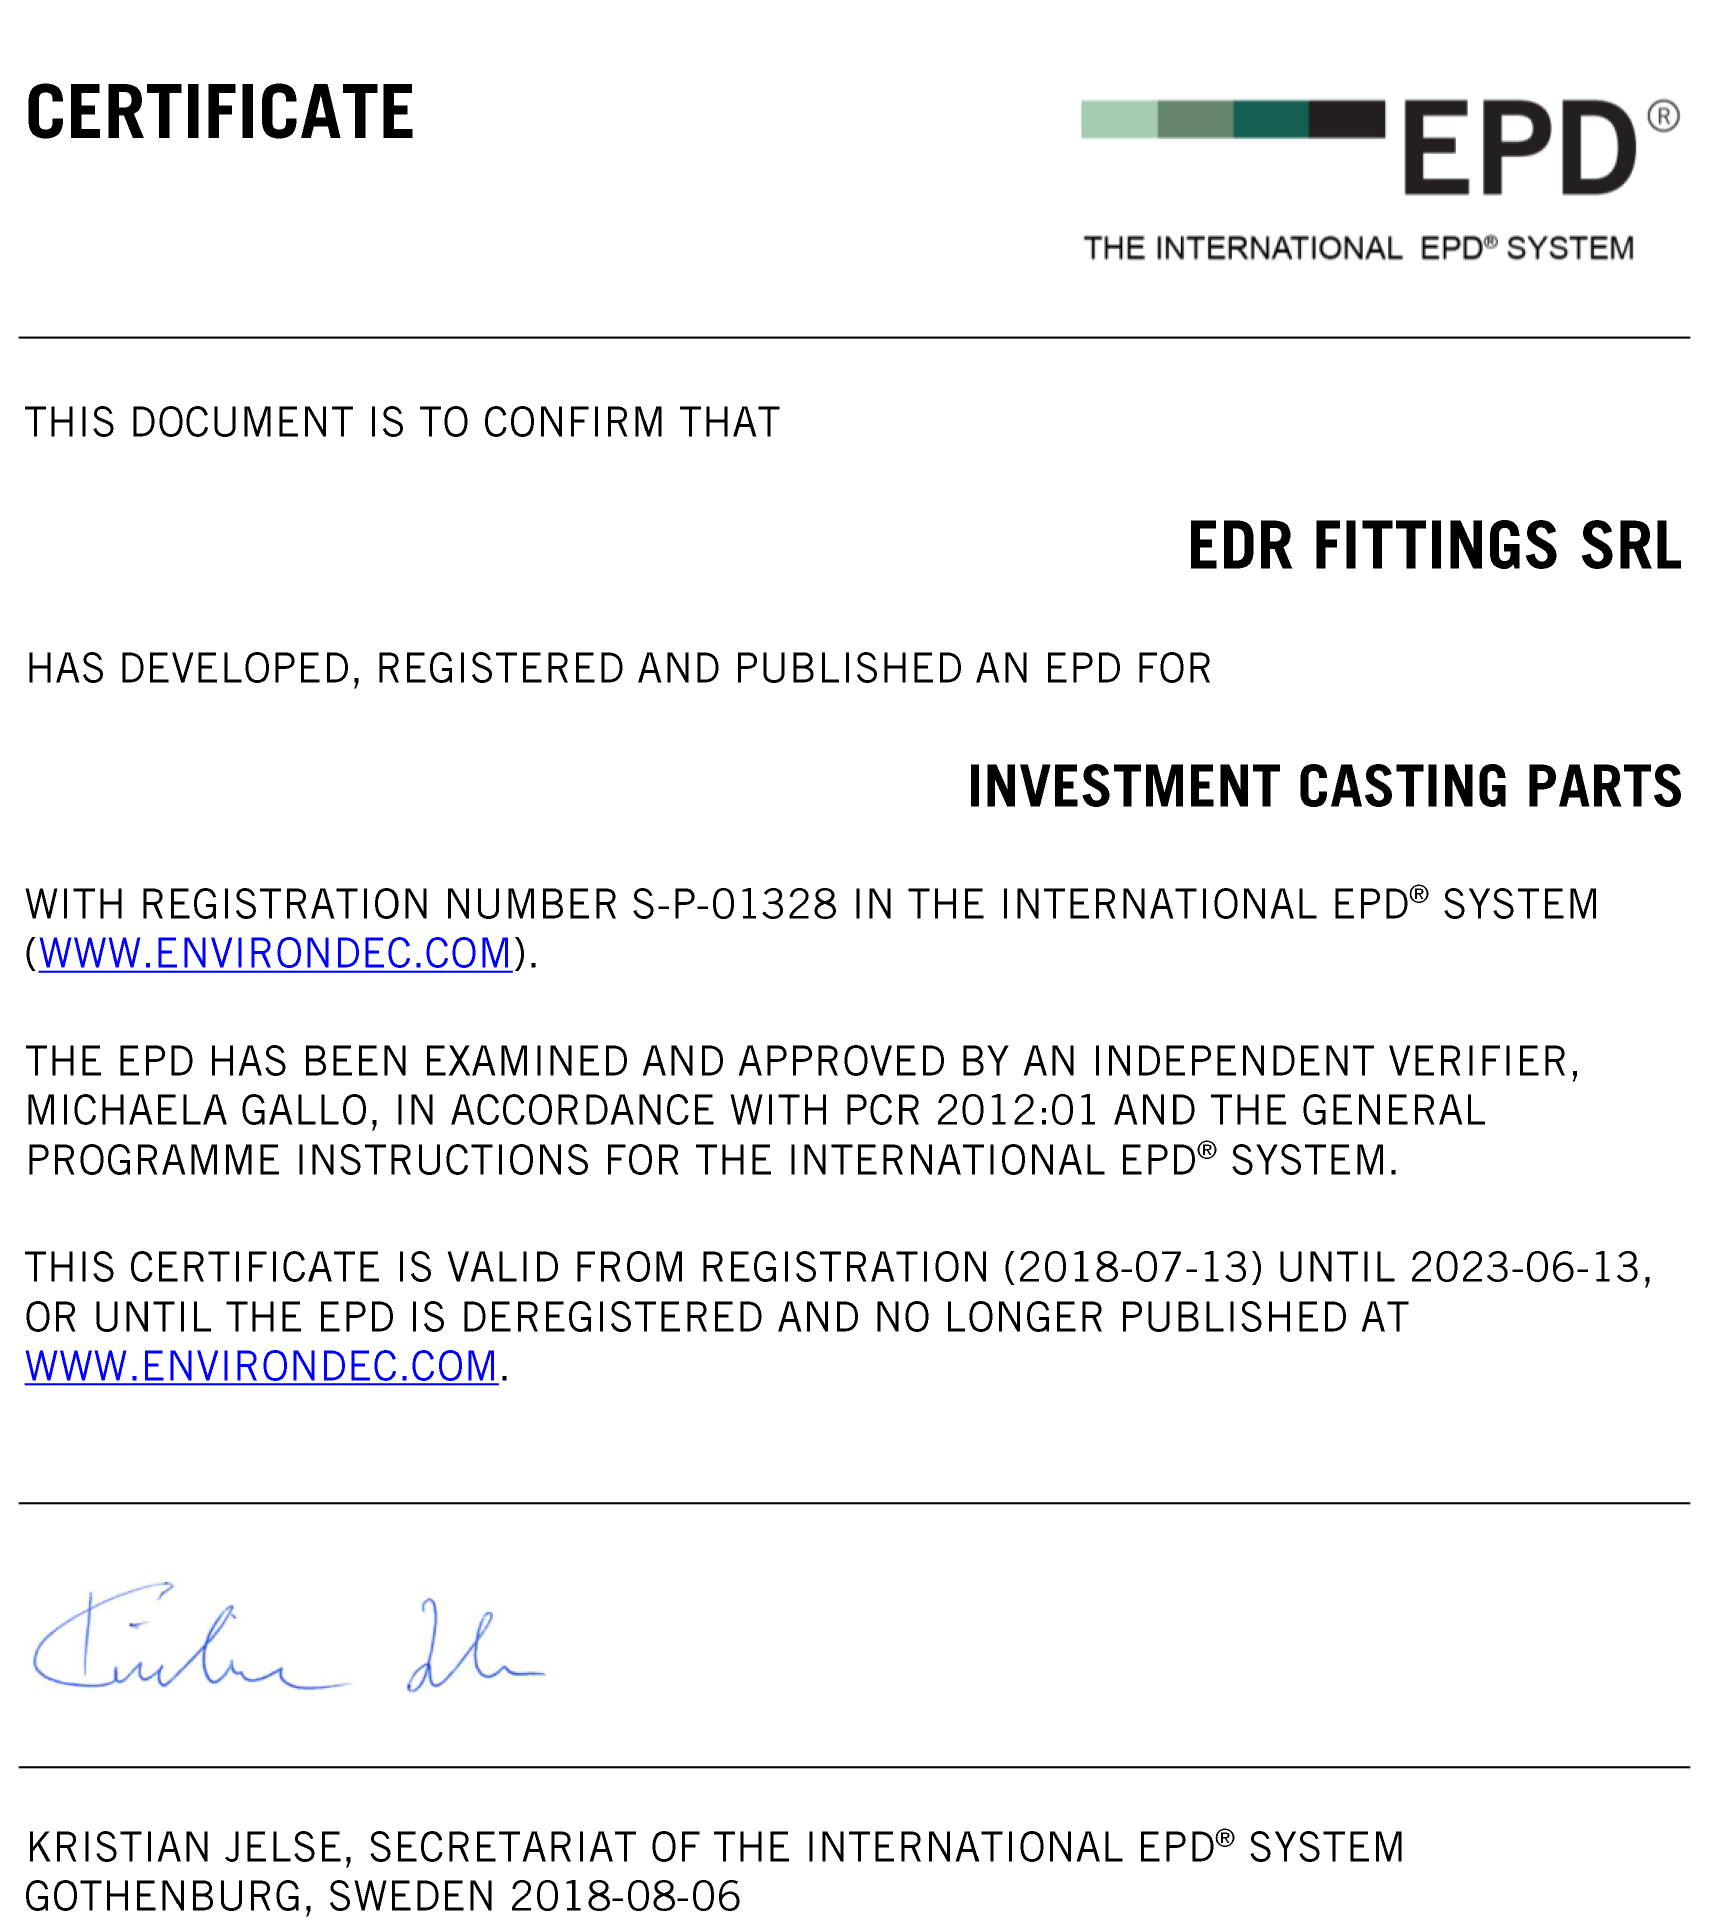 THE INTERNATIONAL EPD SYSTEM